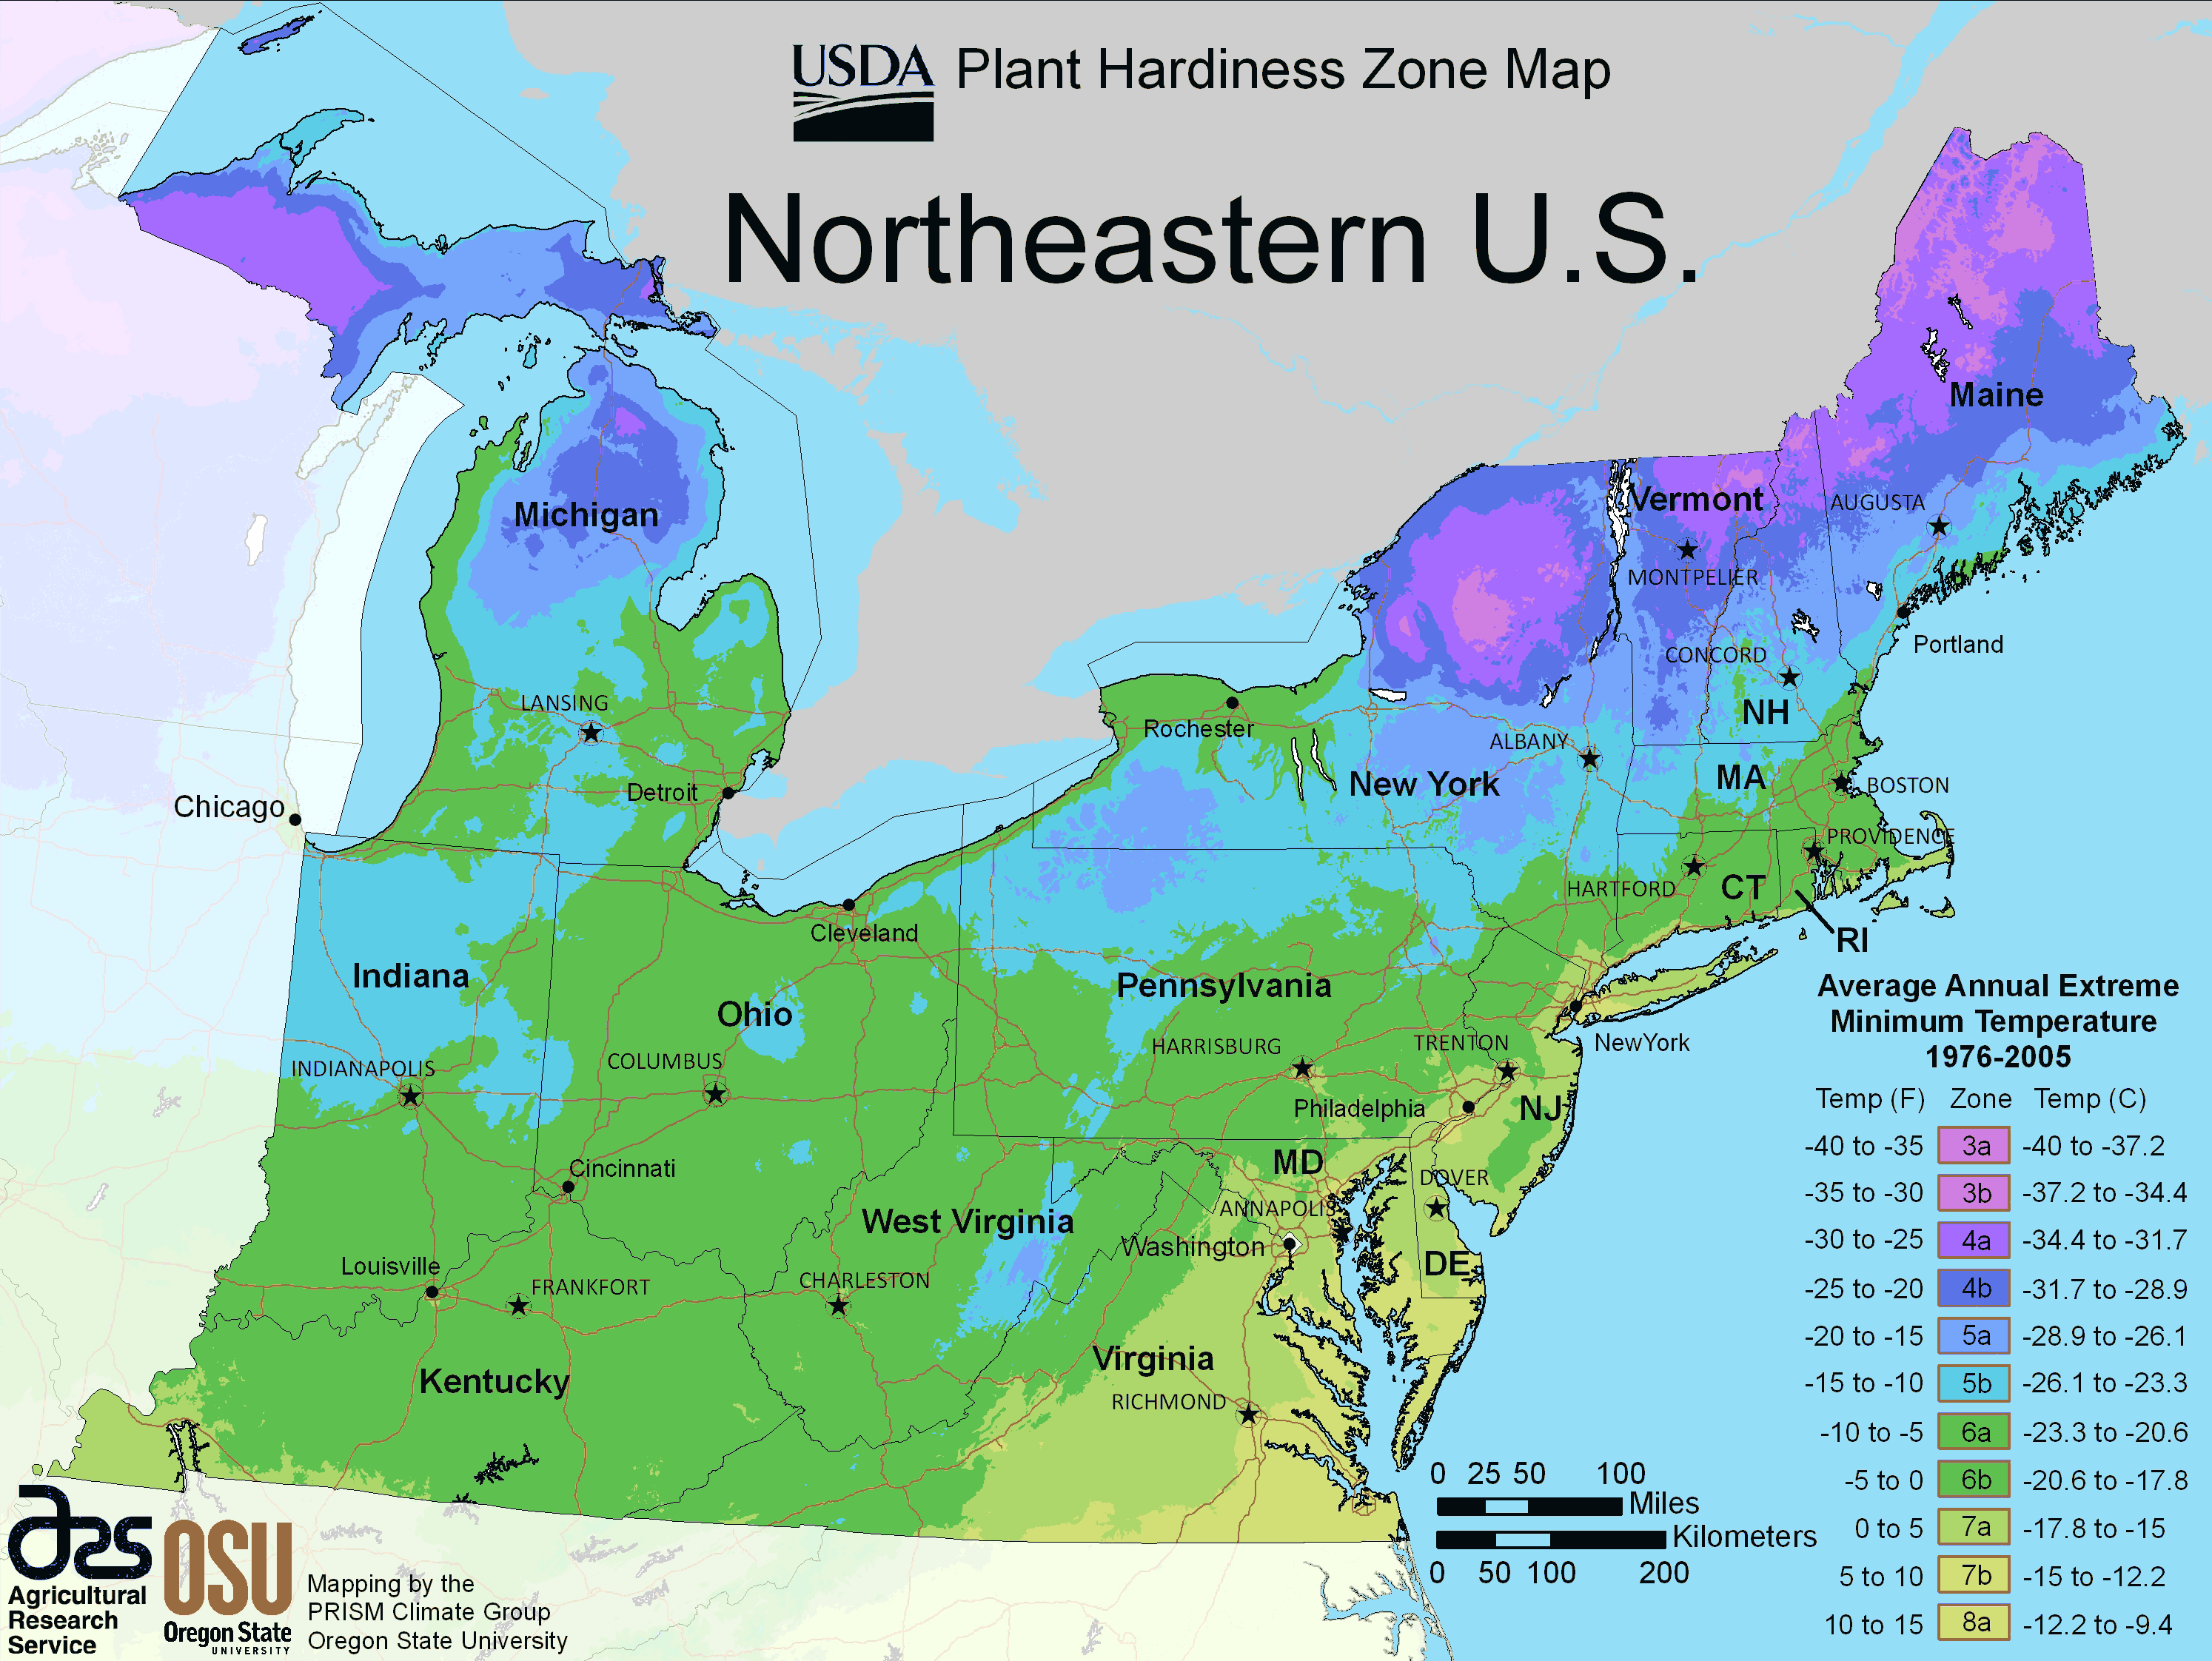 North East Us Plant Hardiness Zone Map